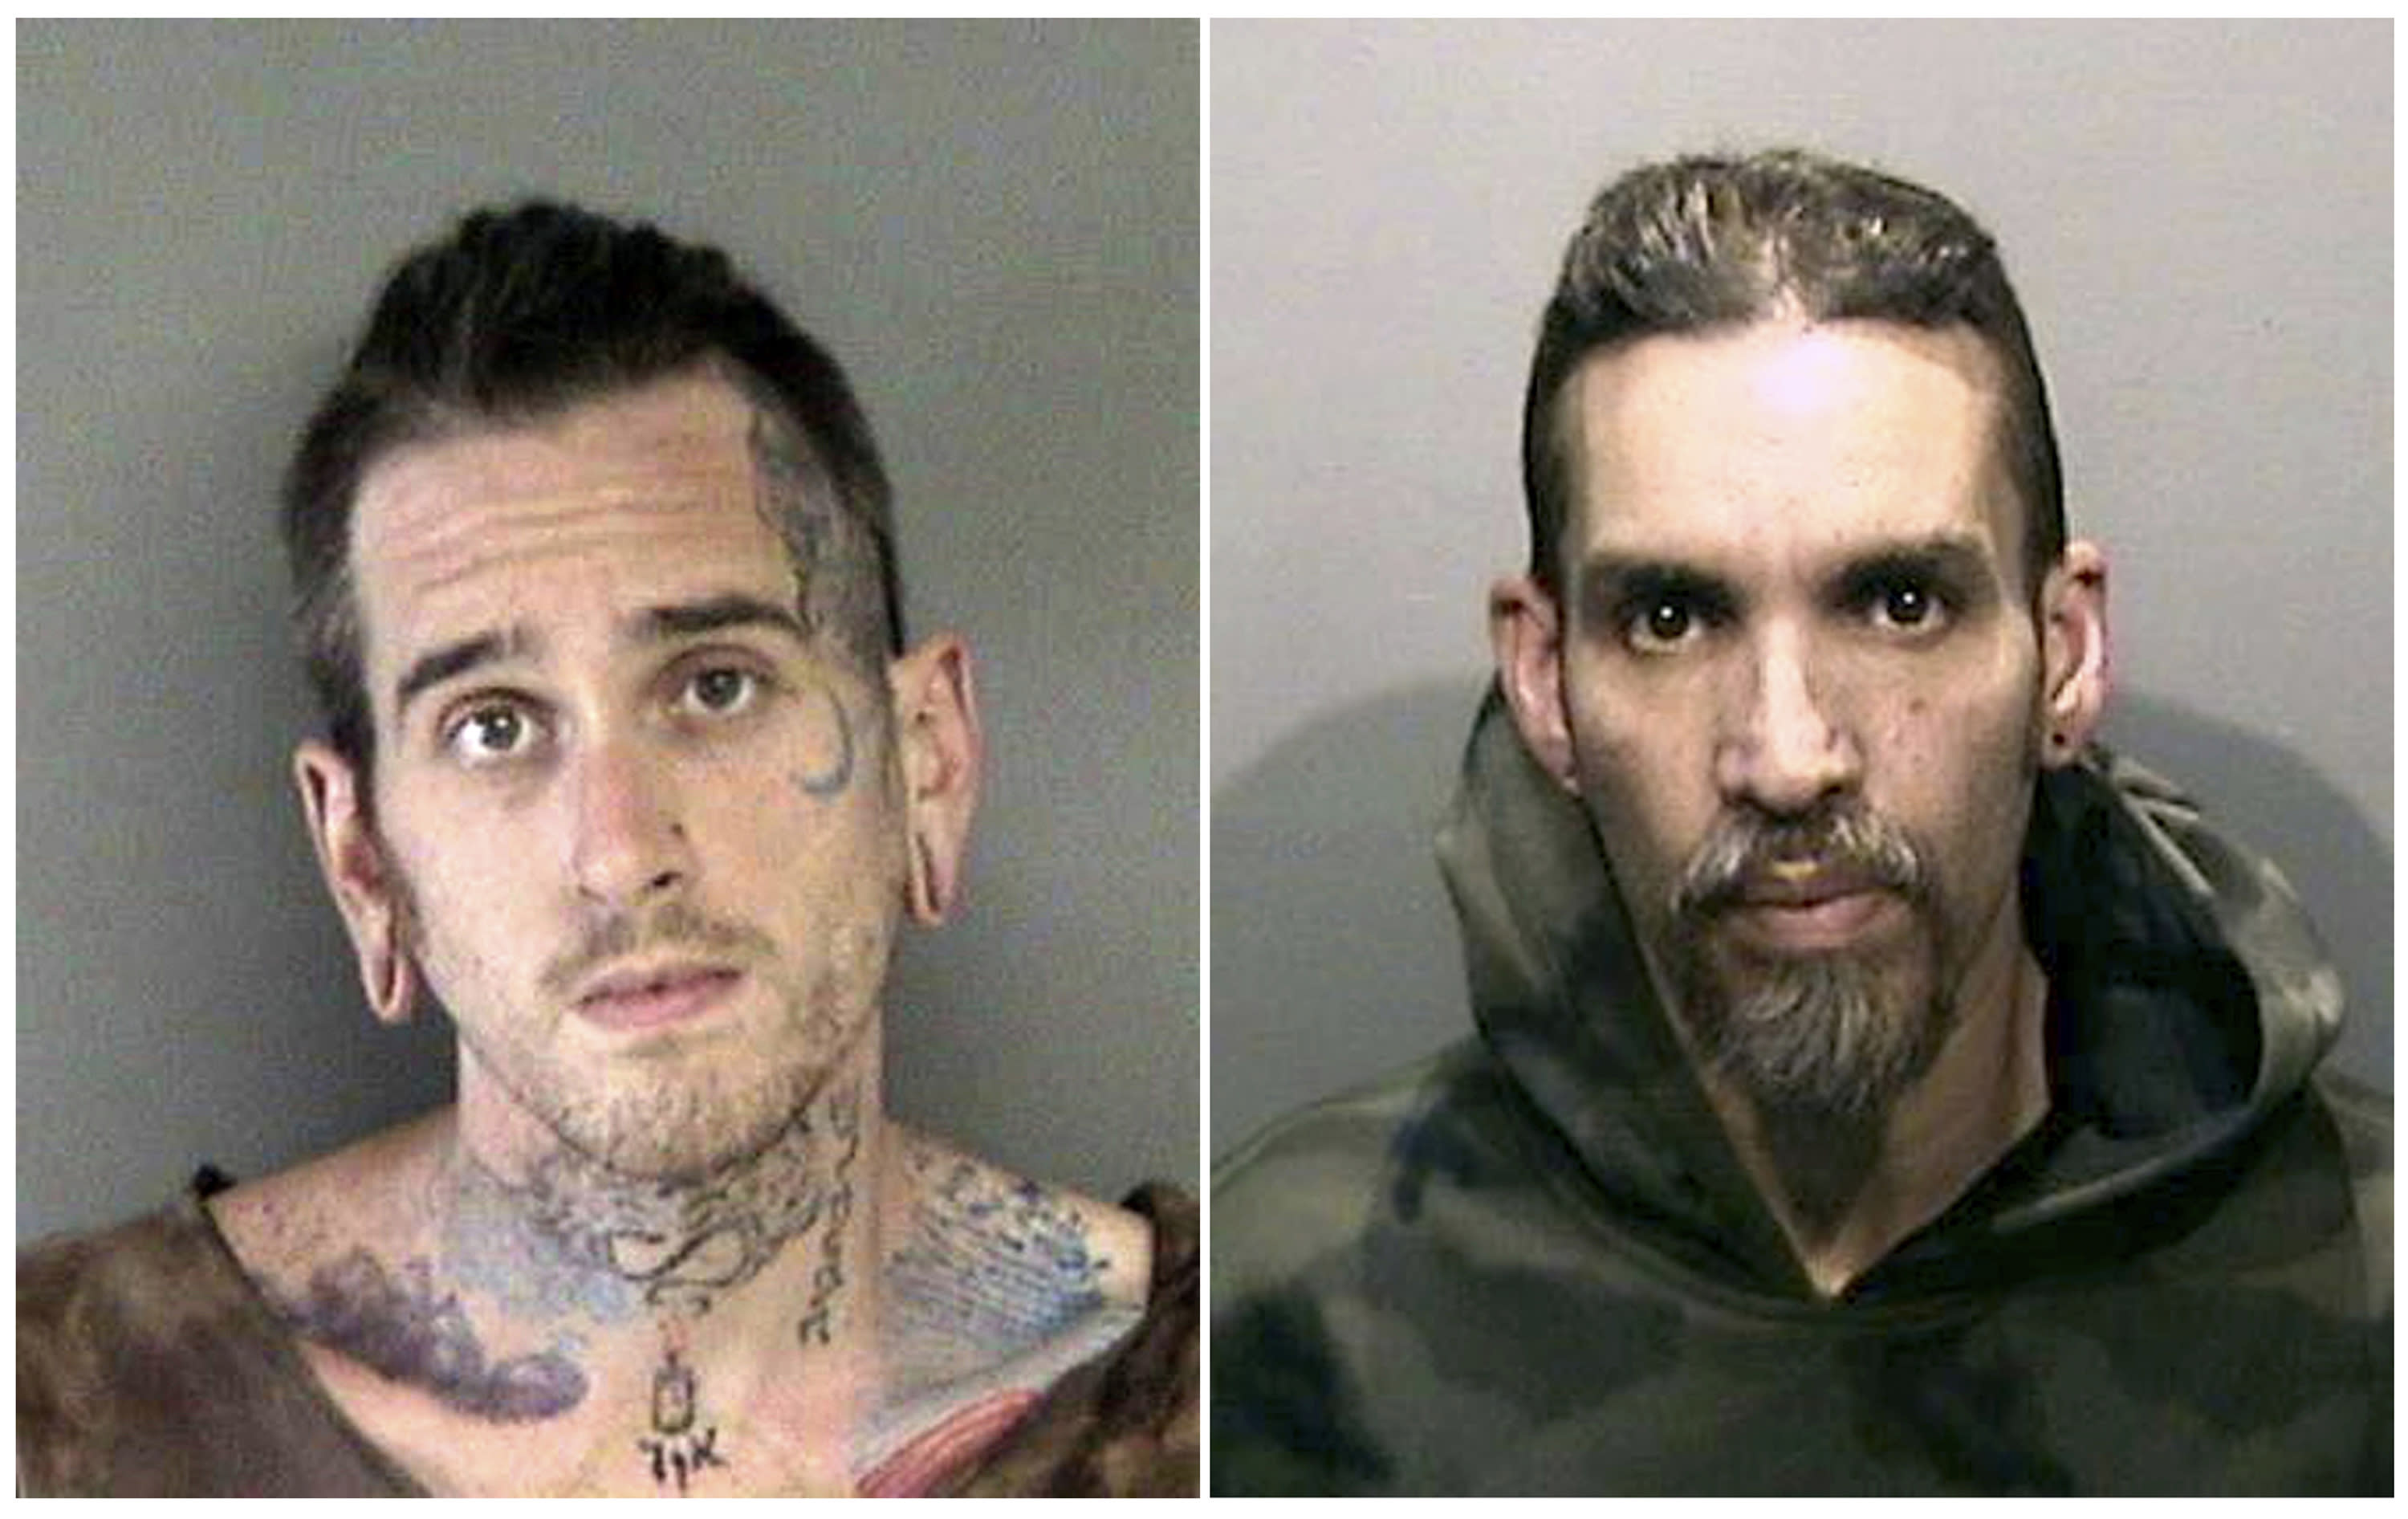 FILE - This combination of June 2017 file booking photos provided by the Alameda County Sheriff's Office shows Max Harris, left, and Derick Almena, at Santa Rita Jail in Alameda County, Calif. A judge will hear a motion asking the court to uphold a plea bargain that was reached with the two men accused of being responsible for a warehouse fire that killed two dozen people at an unlicensed party. (Alameda County Sheriff's Office via AP, File)